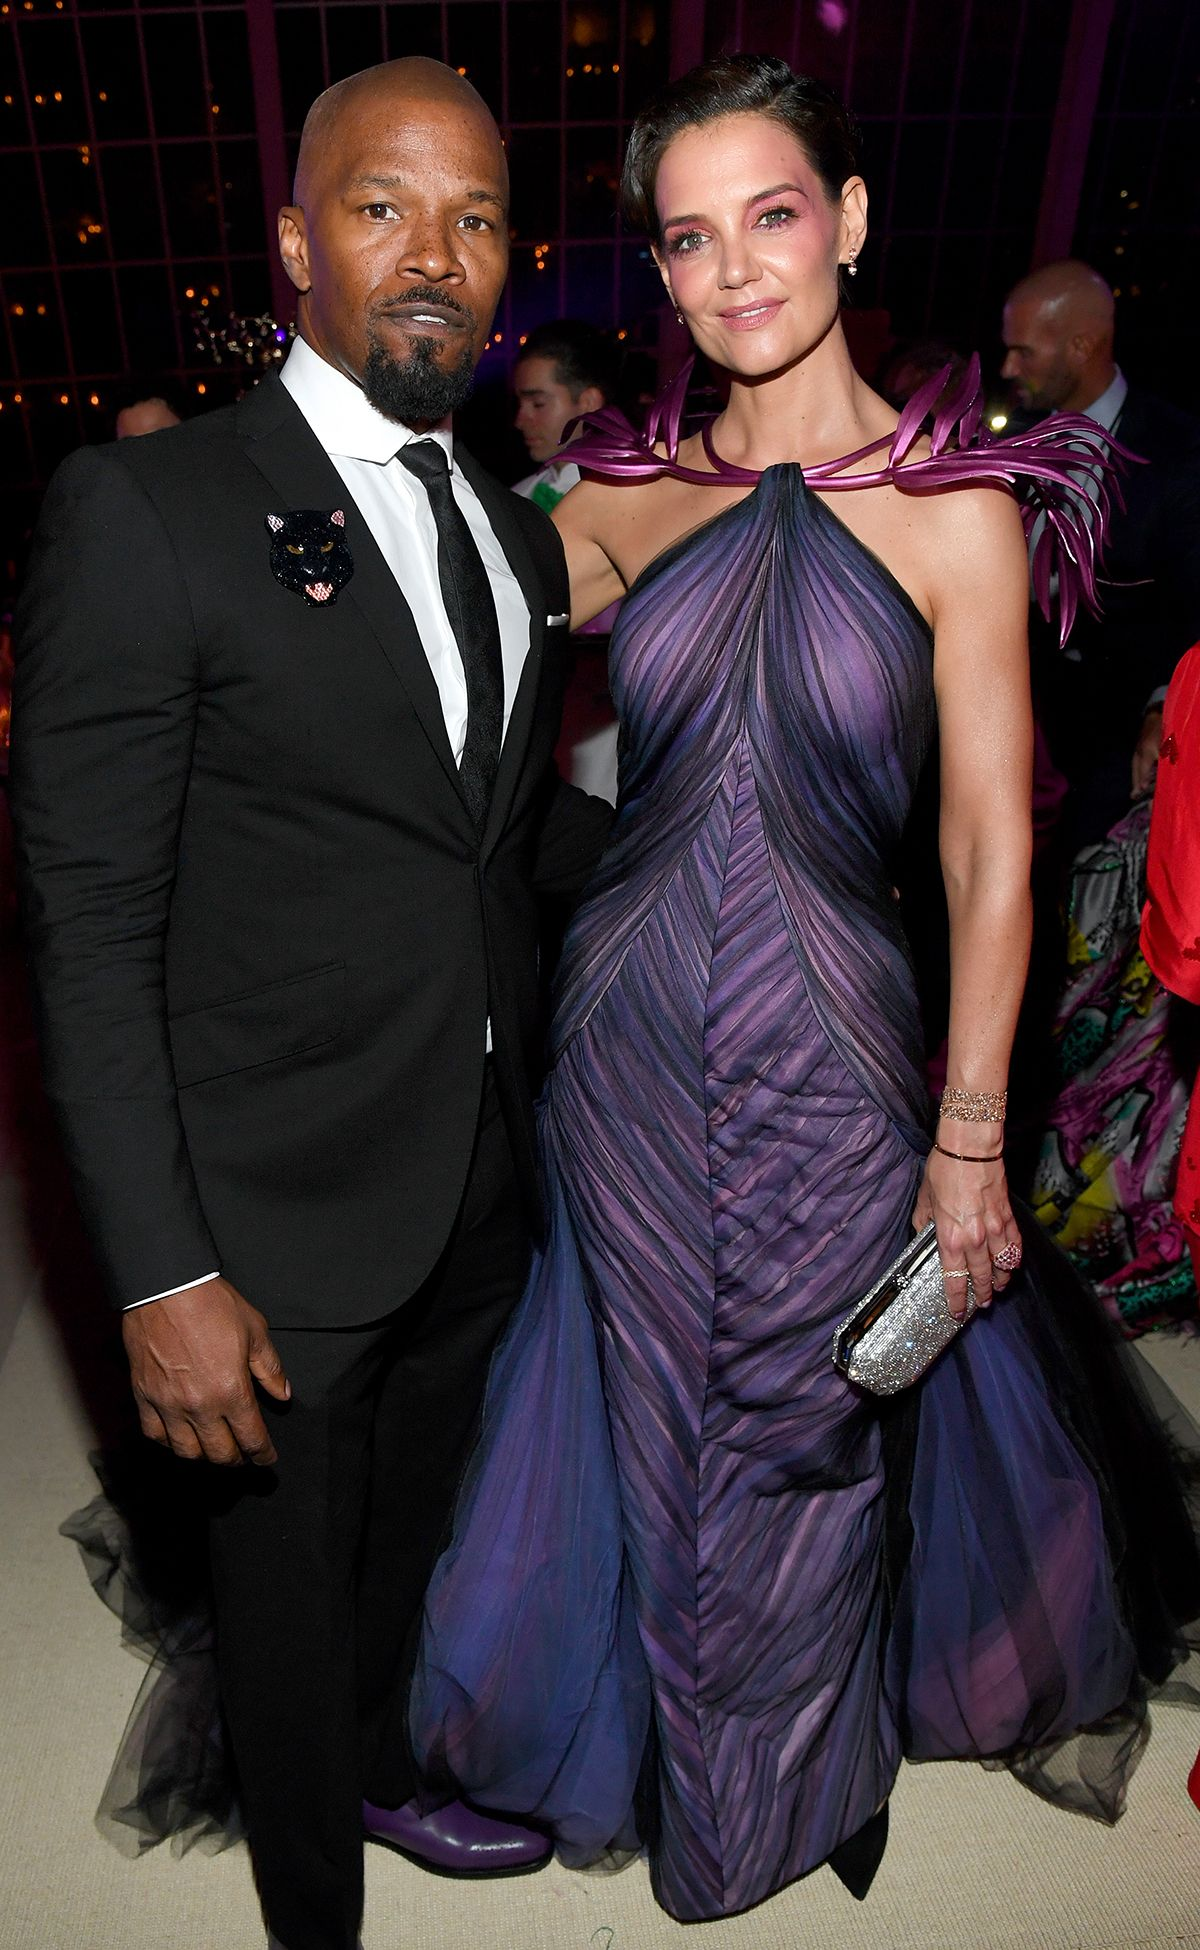 Jamie Foxx and Katie Holmes Make It Met Gala Official, Posing at First Major Event as a Couple